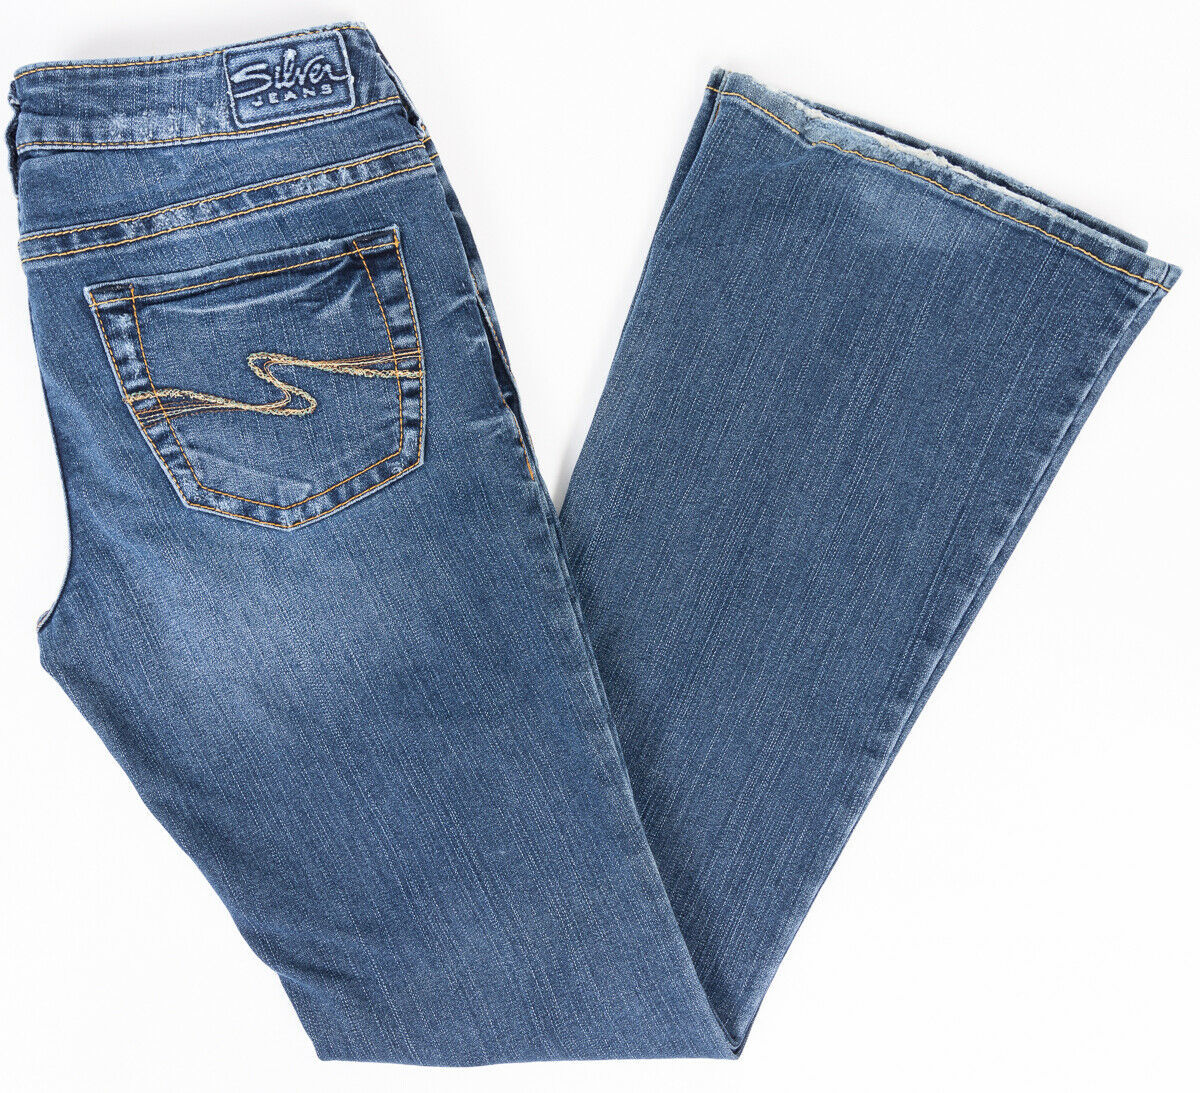 Primary image for Silver Aiko Bootcut Womens Jeans Medium Wash Size 28/33